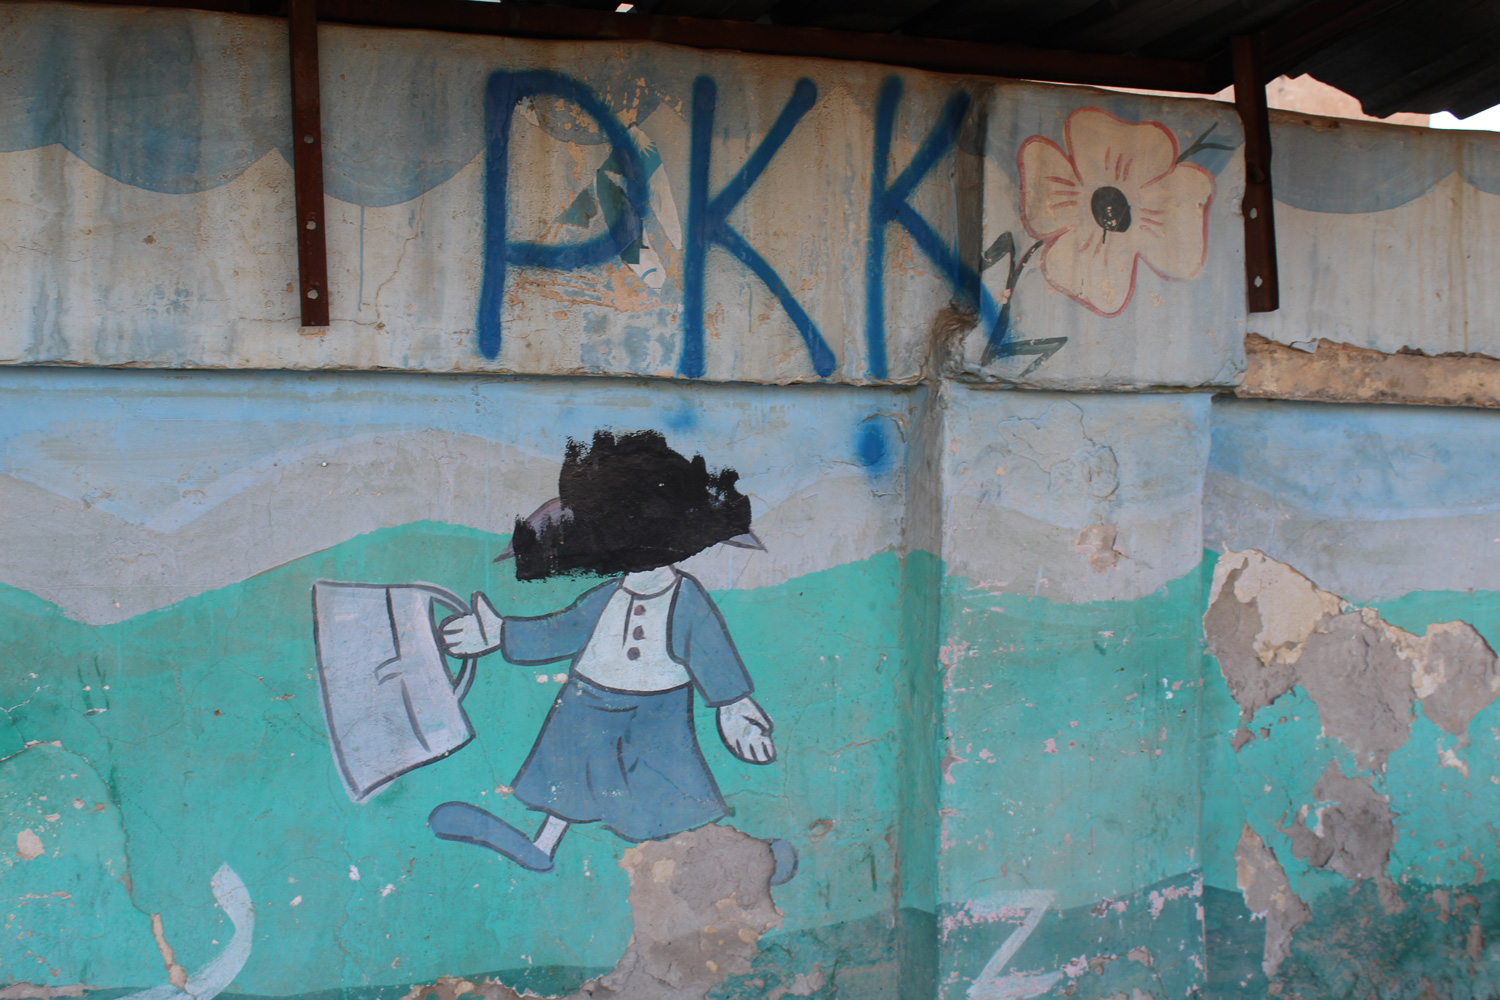 ISIS defaced the murals of this primary school in Sinjar city, PKK fighters tagged their affiliation on the wall after they helped take the town from the terror group.